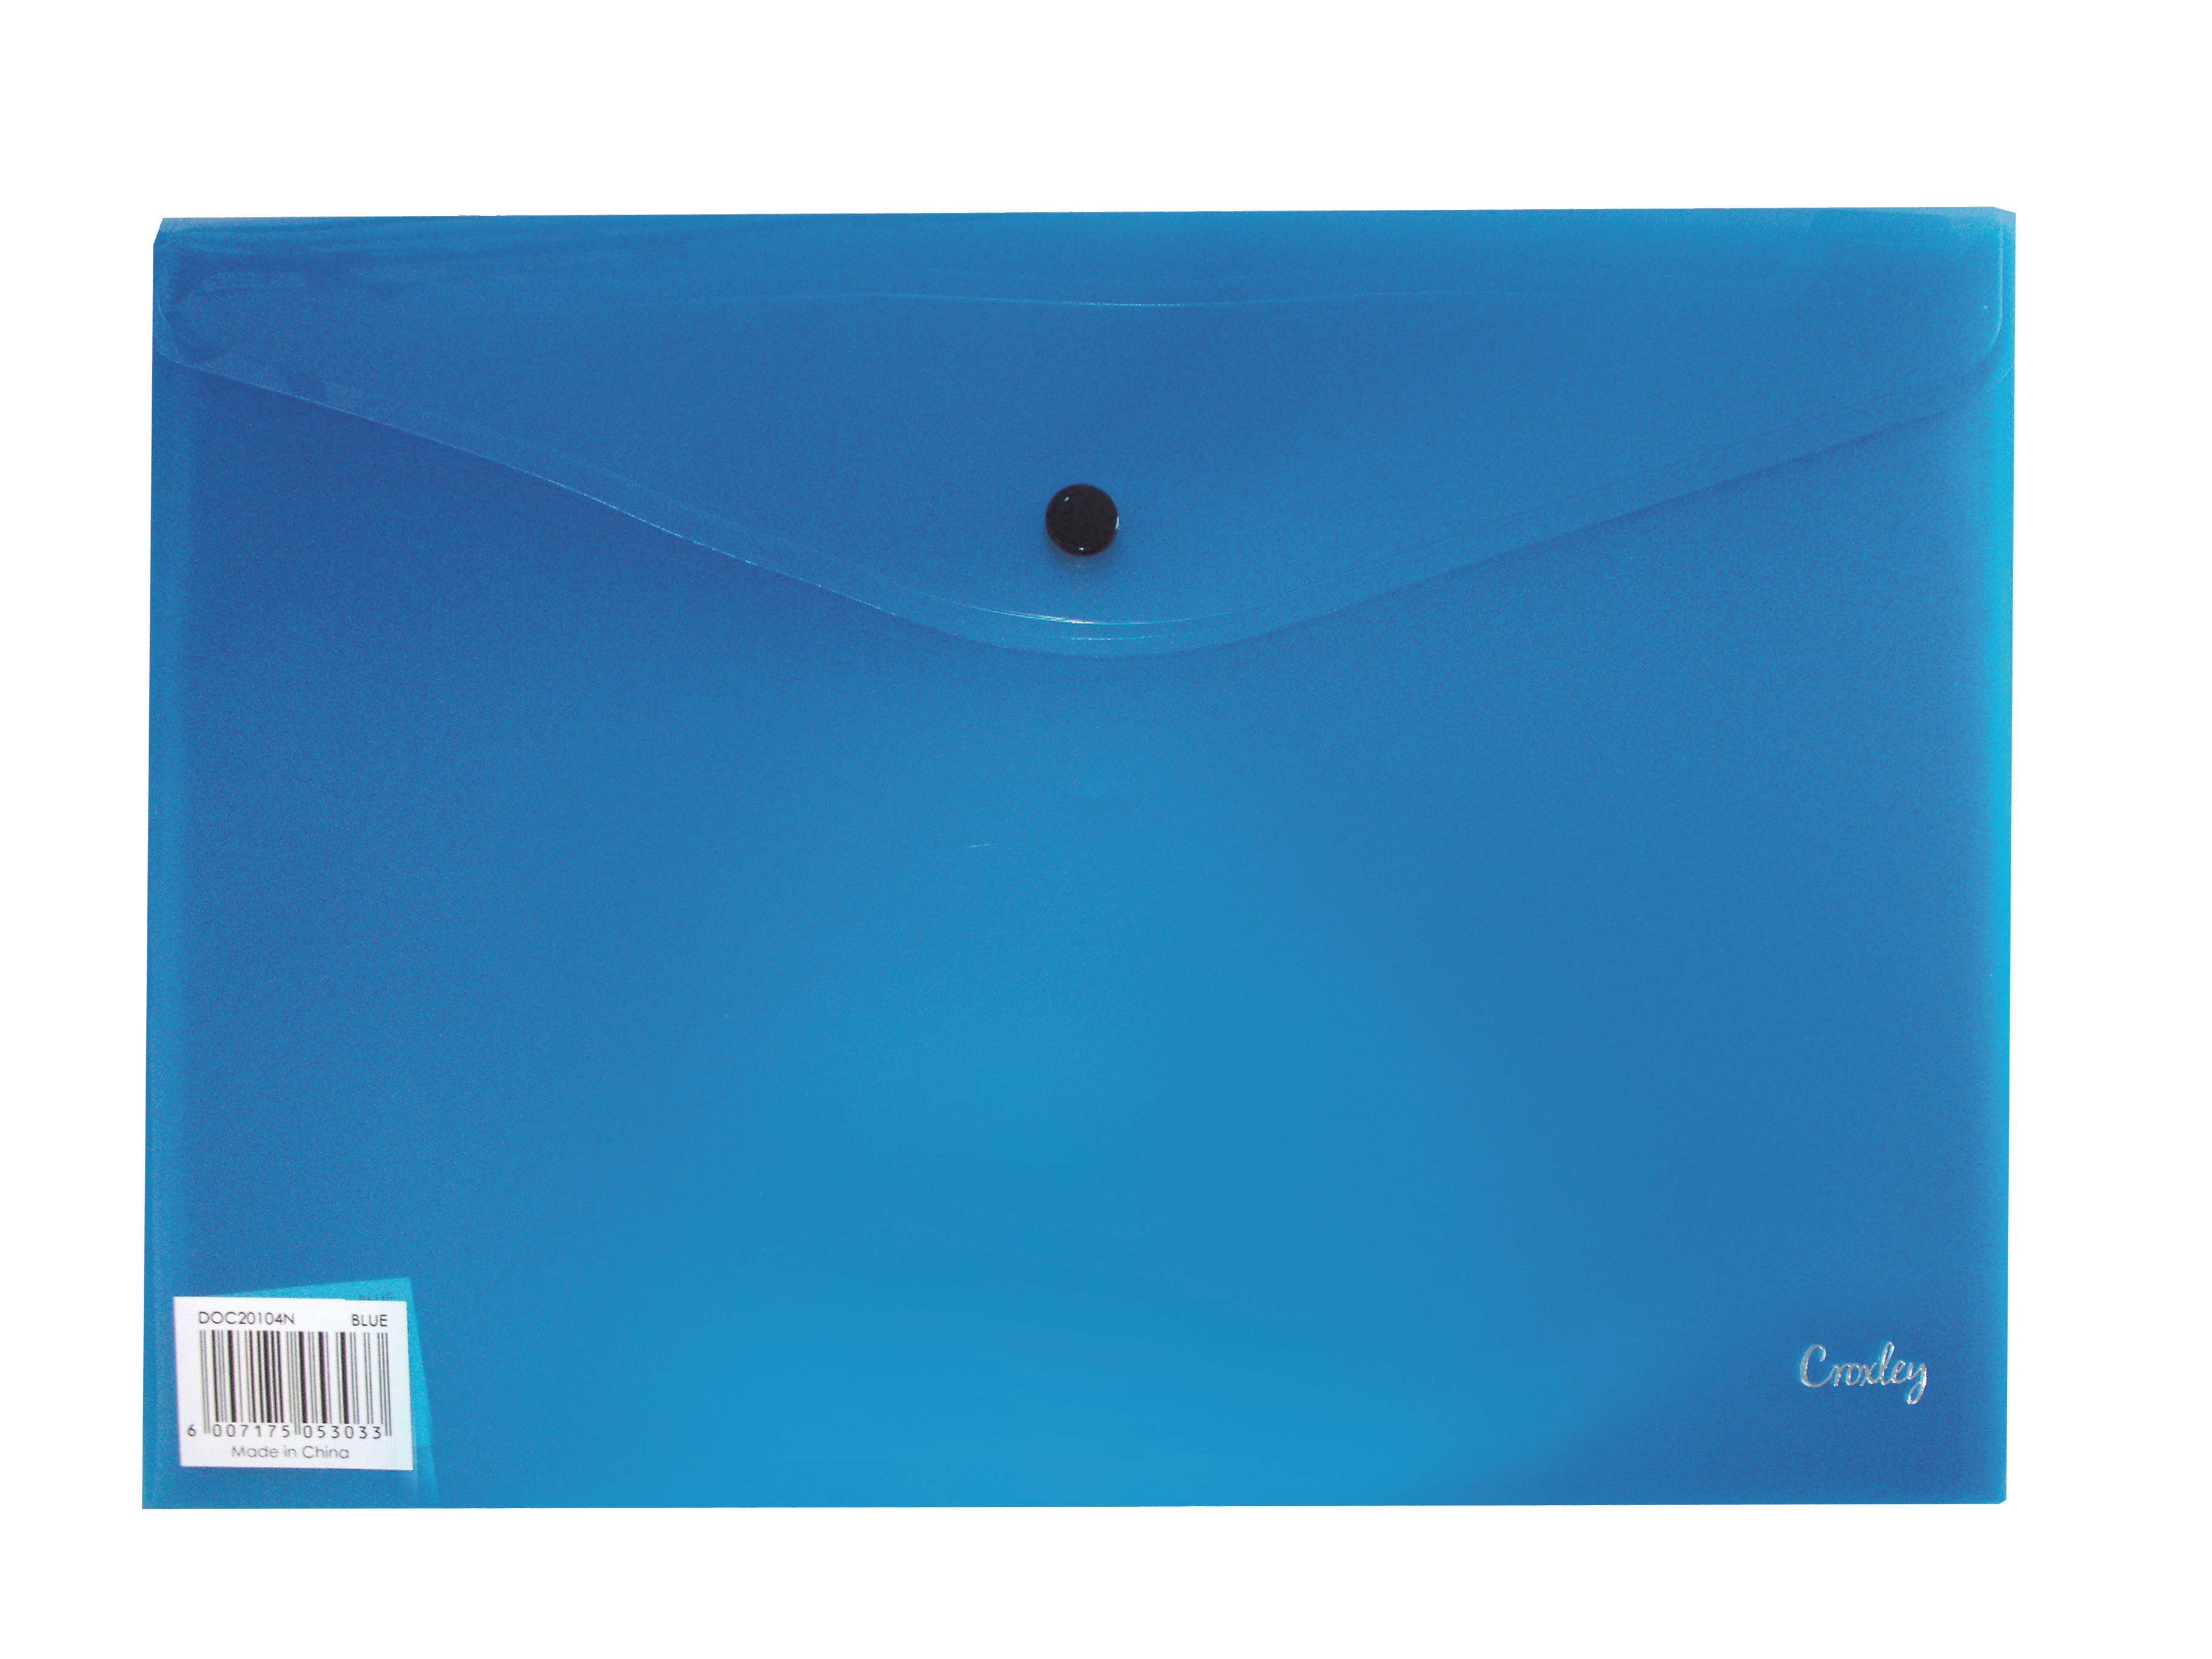 Croxley A4 Envelope with Button - Blue PK 12